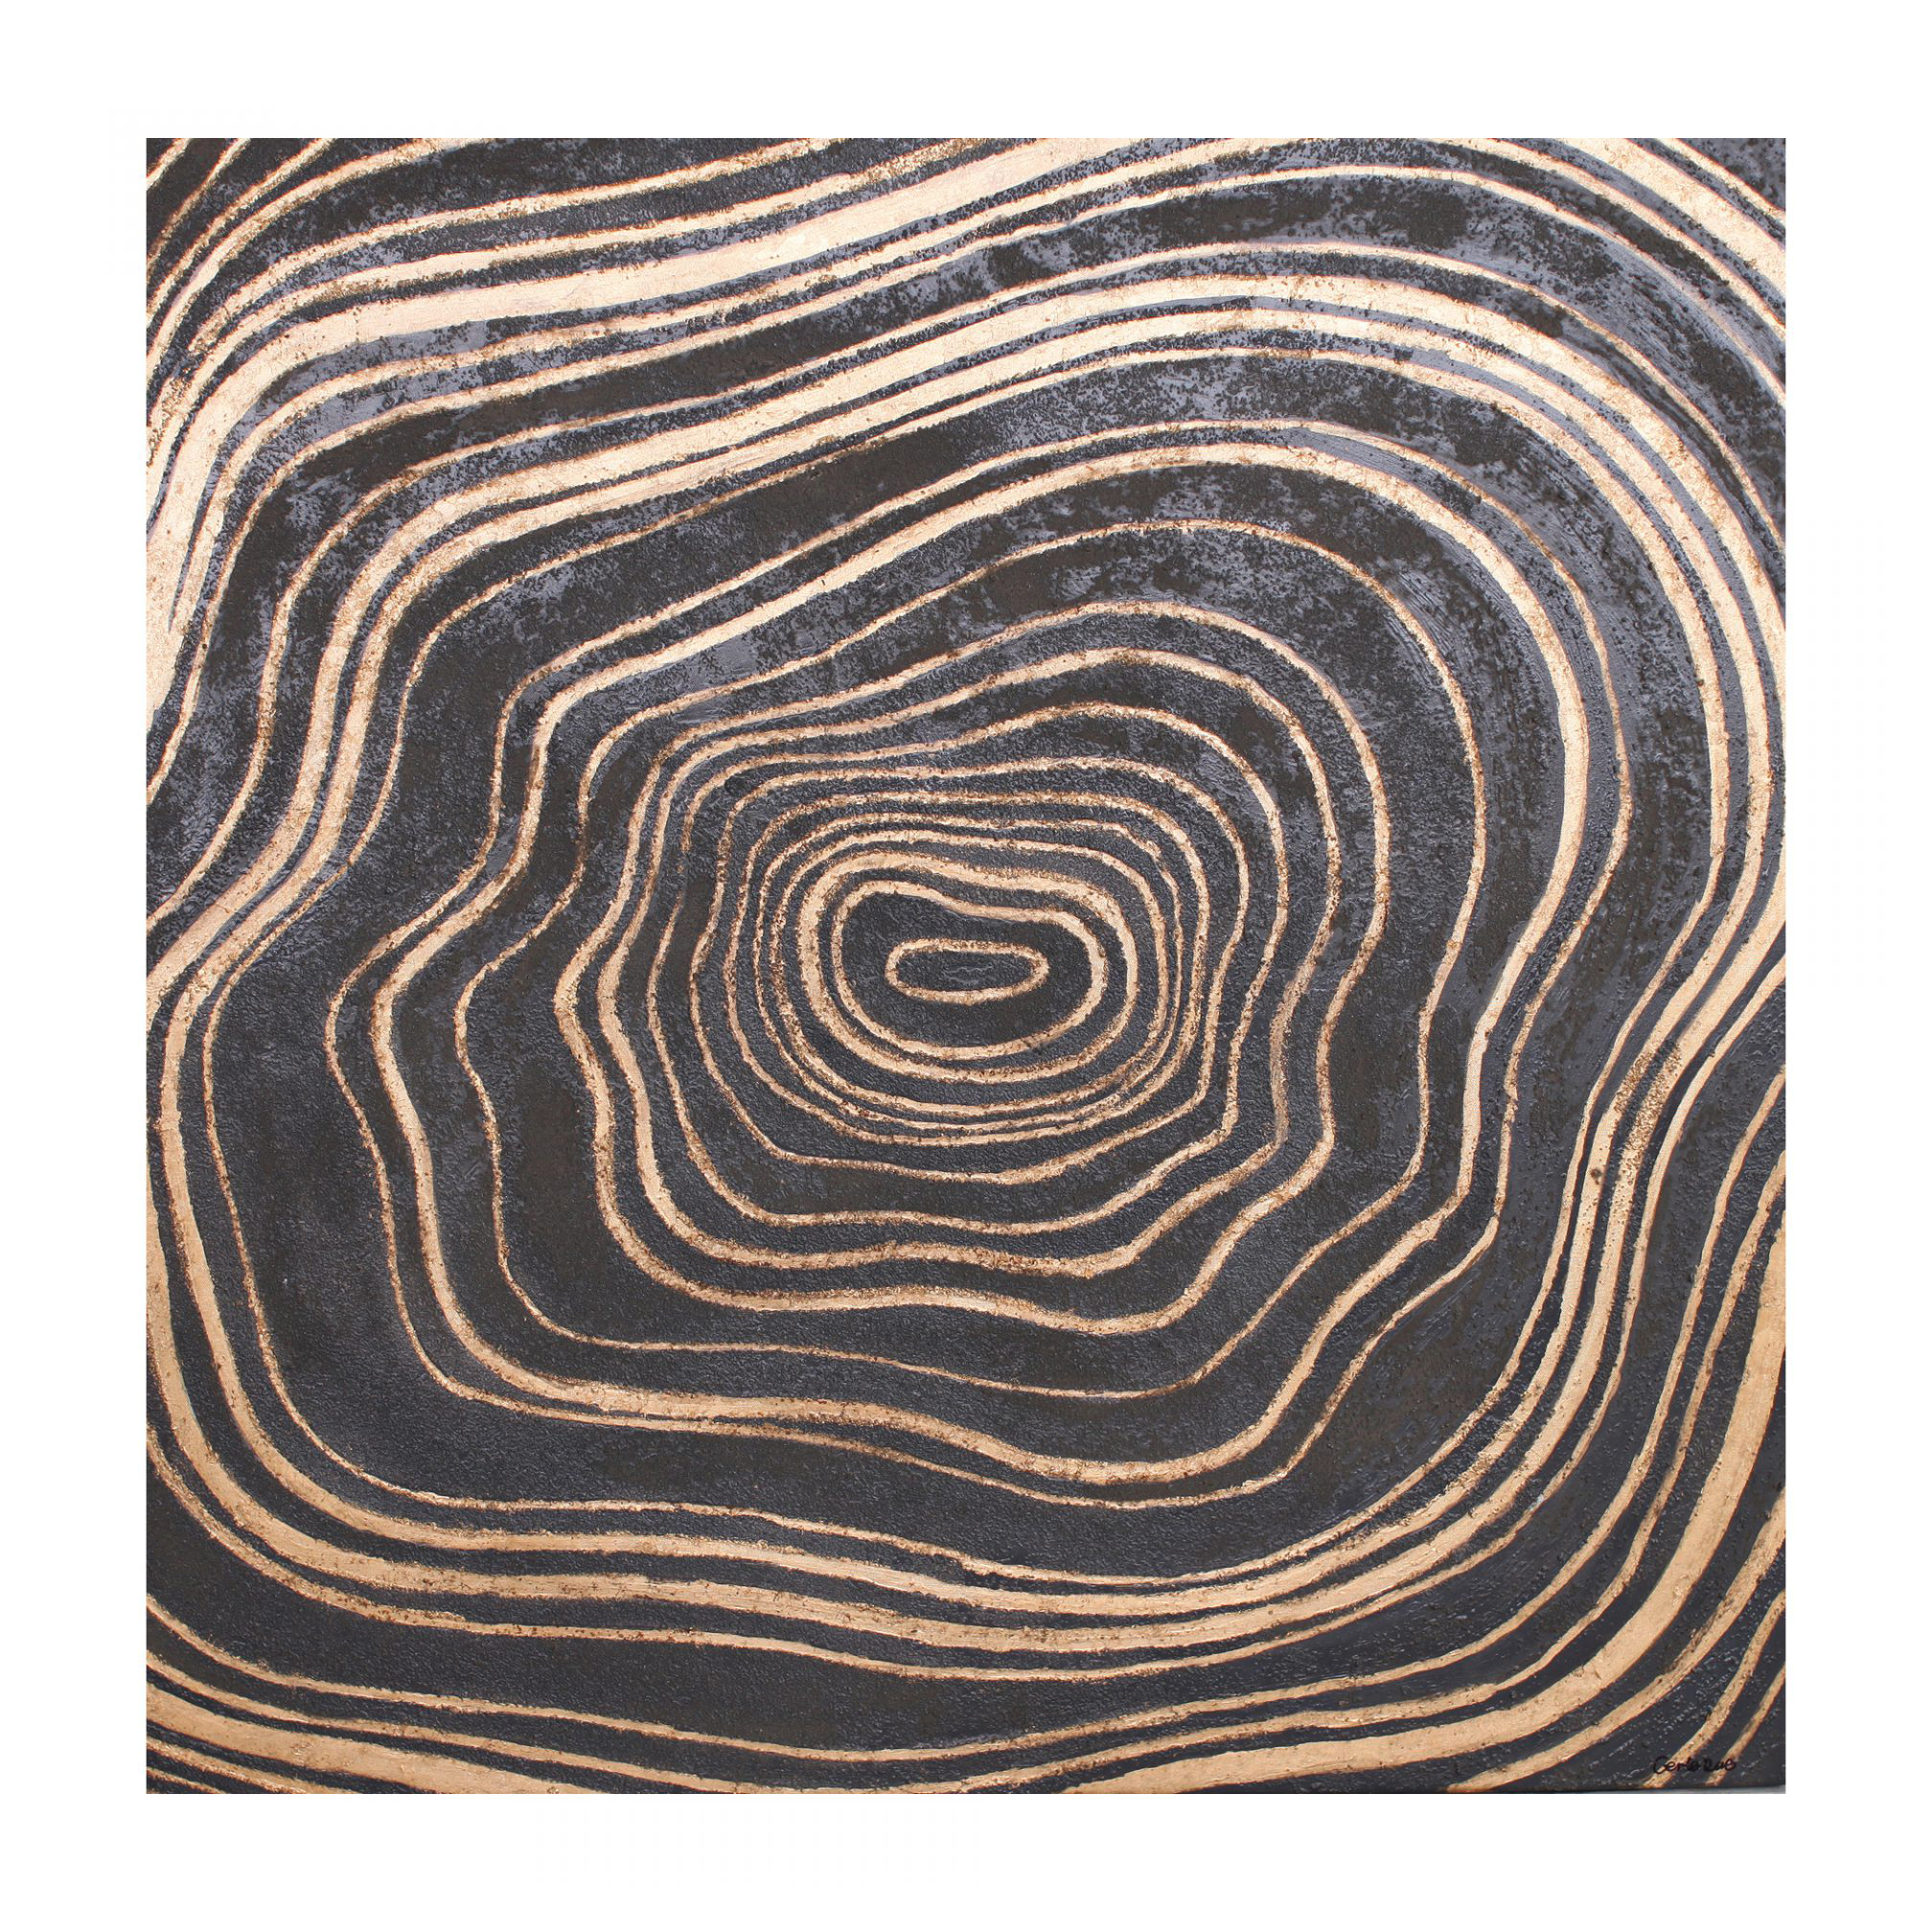 Tree Rings Wall Decor – Peter Corvallis Productions – Event Inside Rings Wall Decor (View 15 of 30)